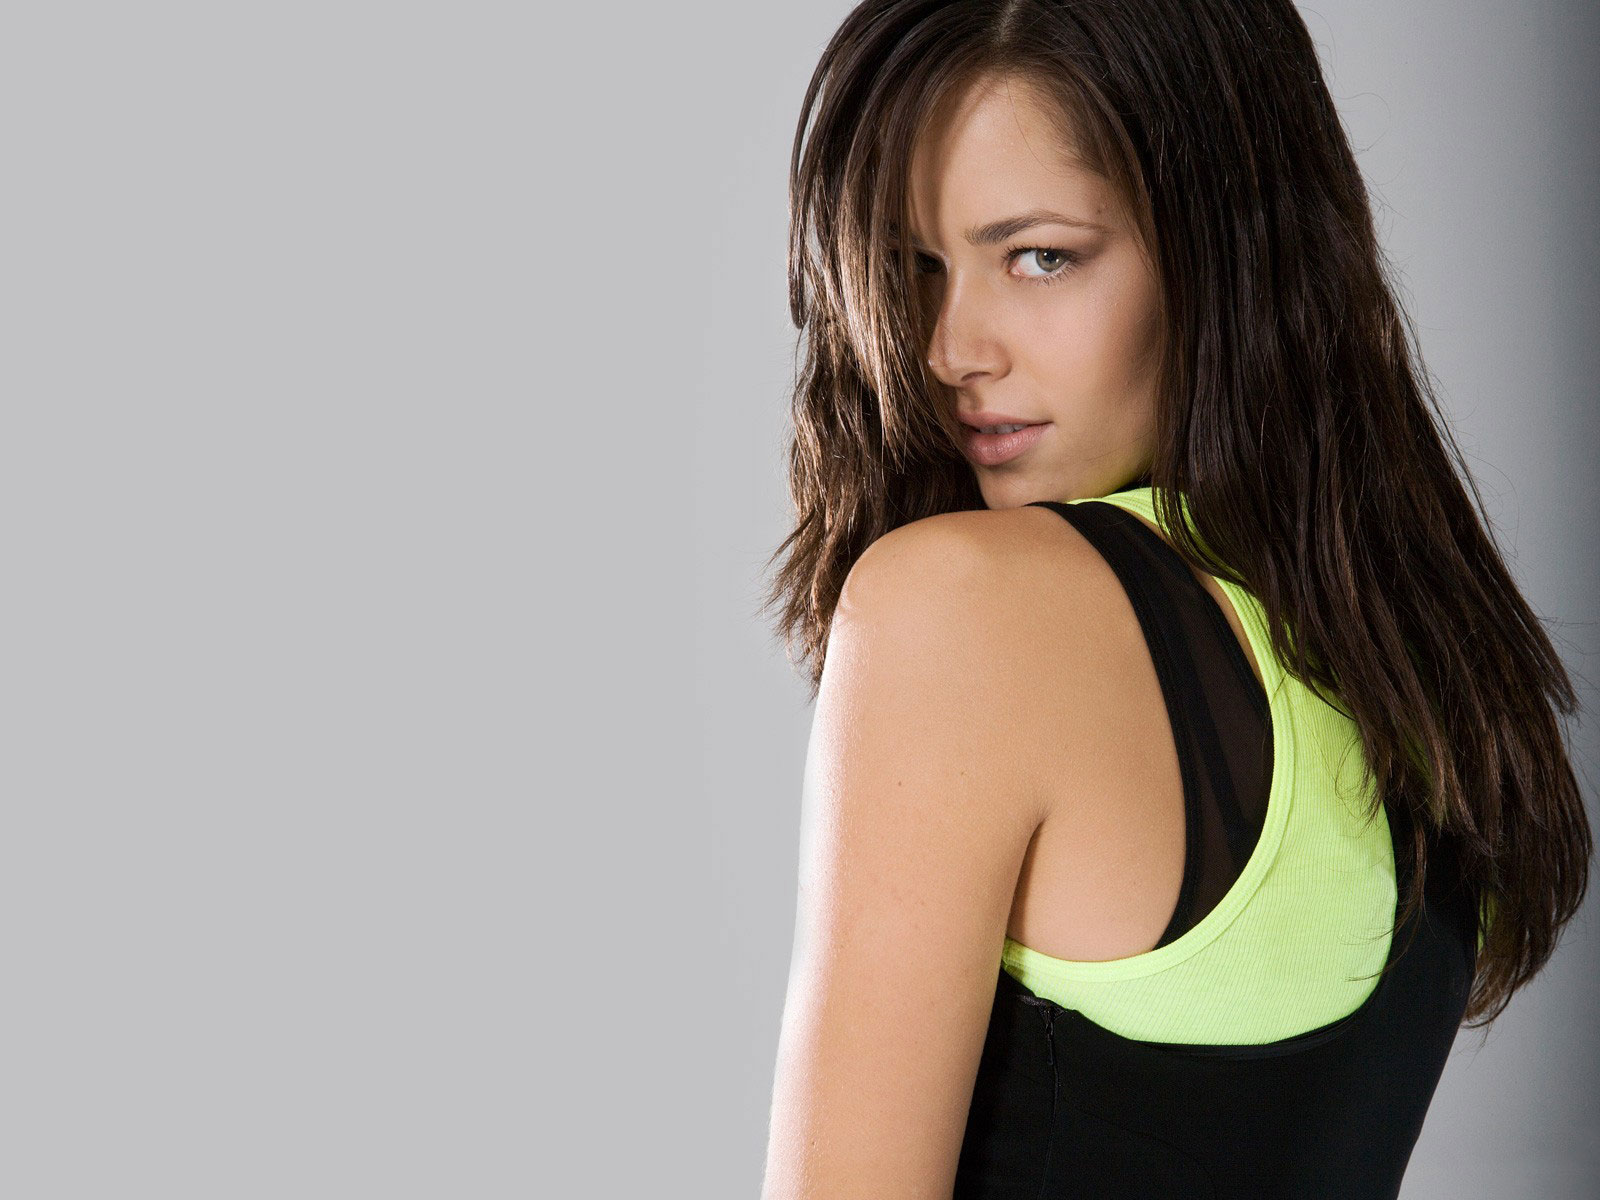 Ana Ivanovic Serbian  Tennis  Player 220.11 Kb